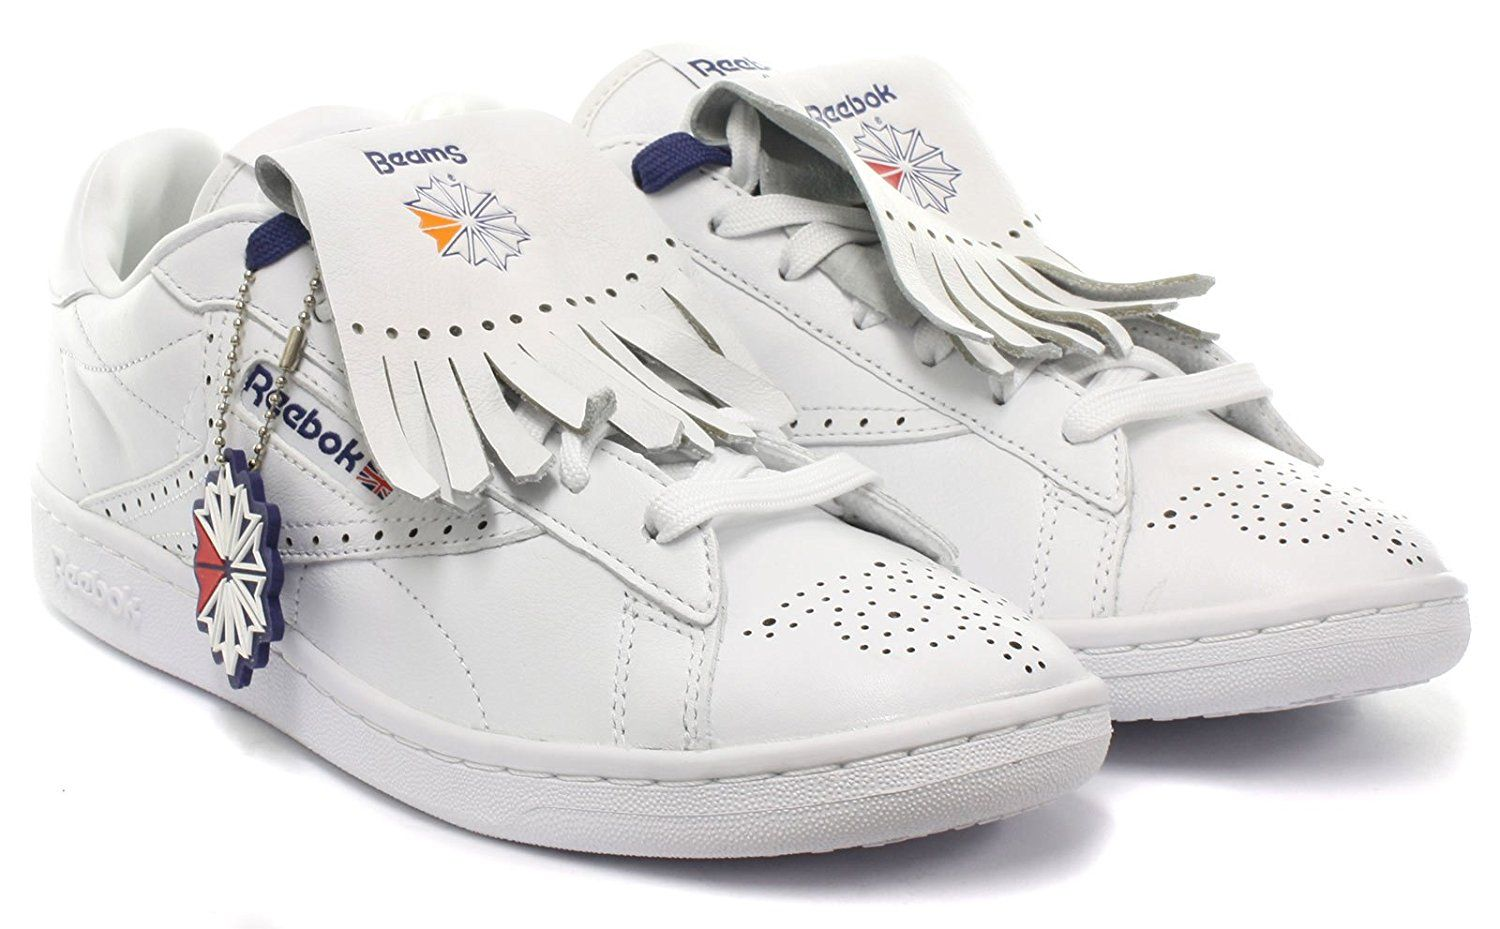 81181afb7 Reebok Classic NPC UK Beams Mens Trainers Size UK 10.5  Amazon.co.uk  Shoes    Bags